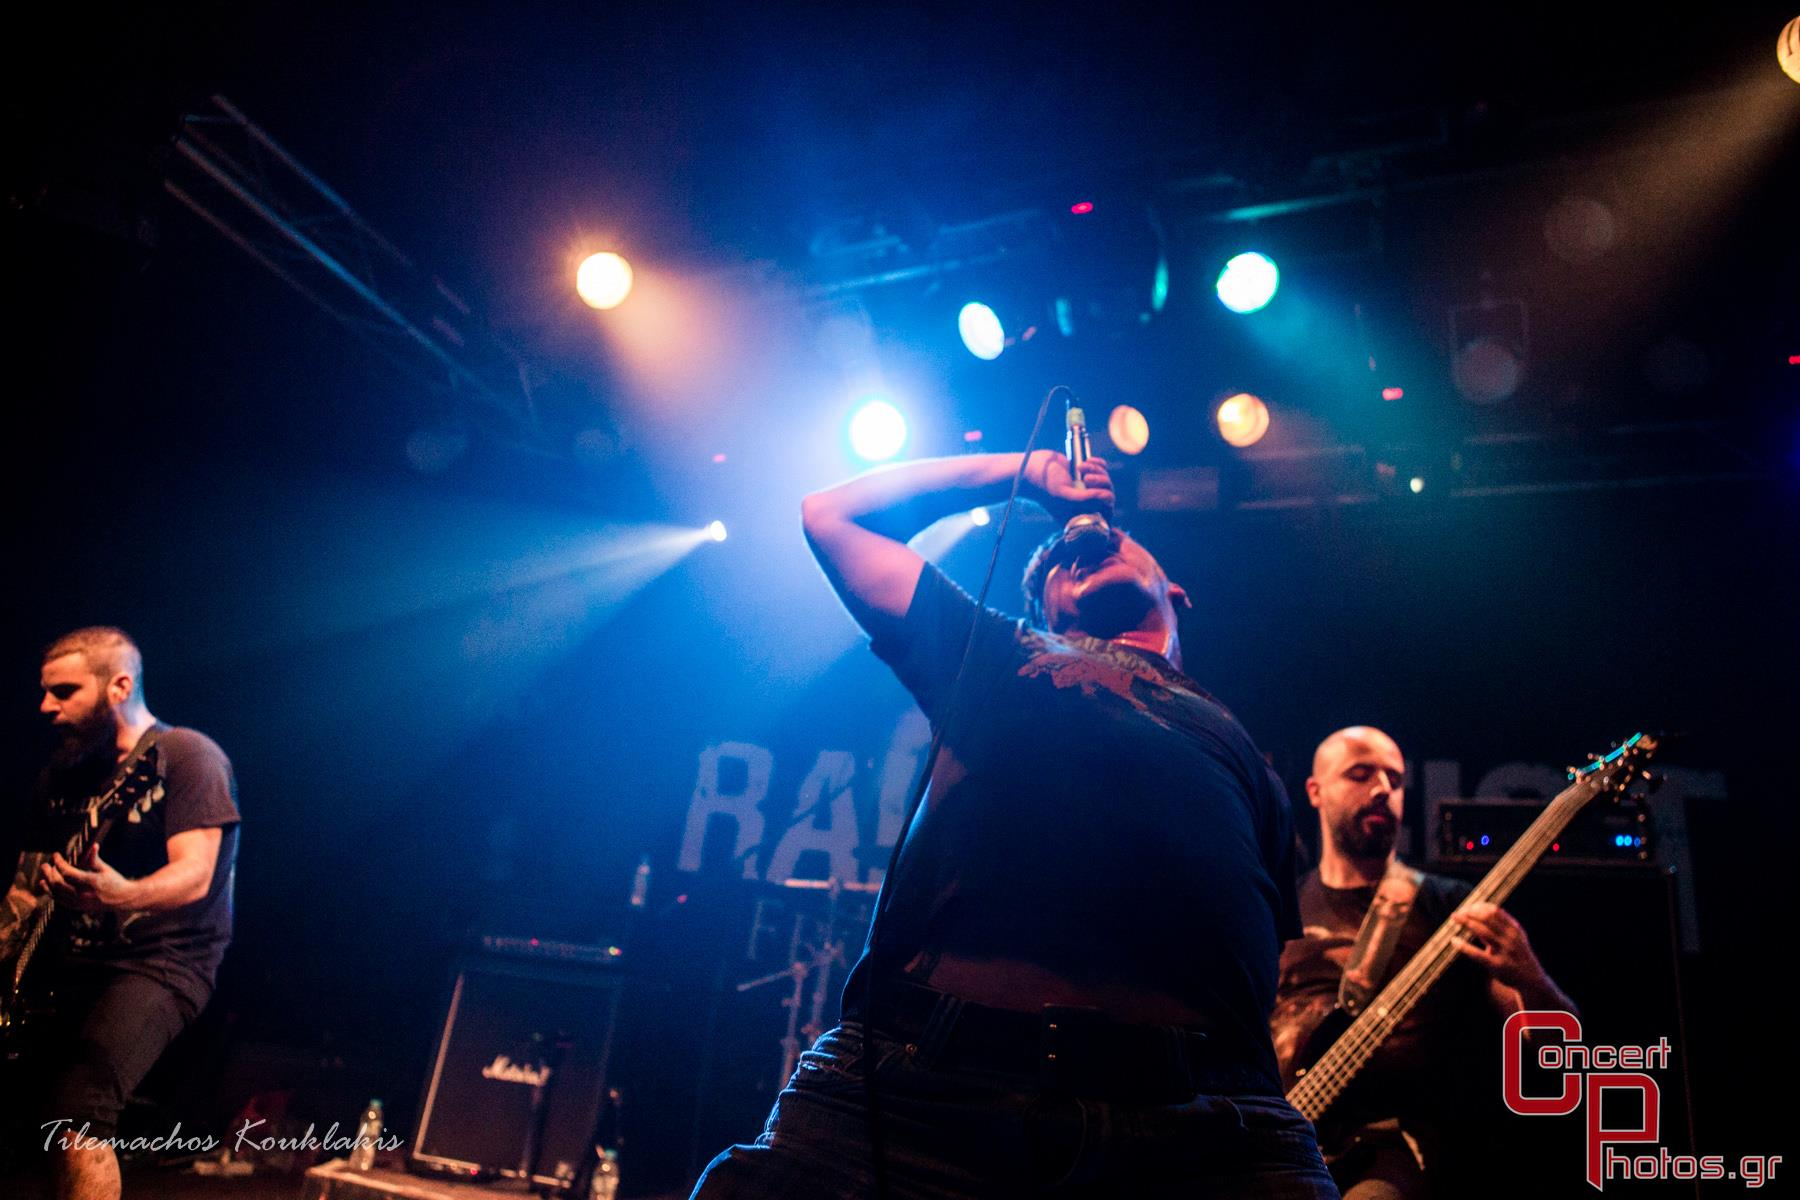 Raised Fist - Endsight - The Locals-Raised Fist photographer:  - Endsight_01